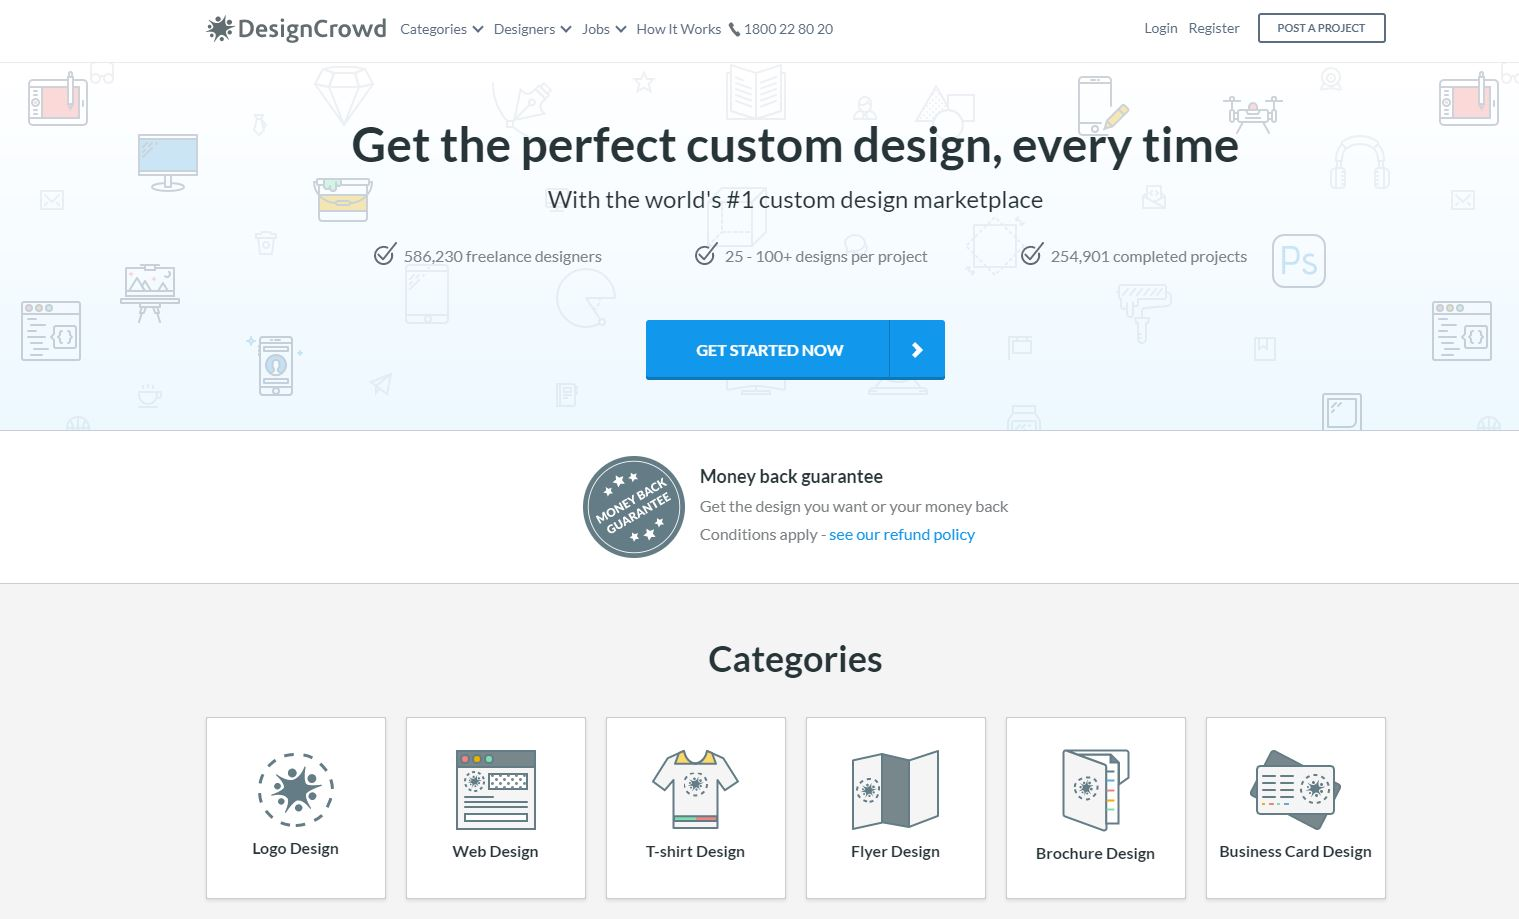 DesignCrowd Coupons